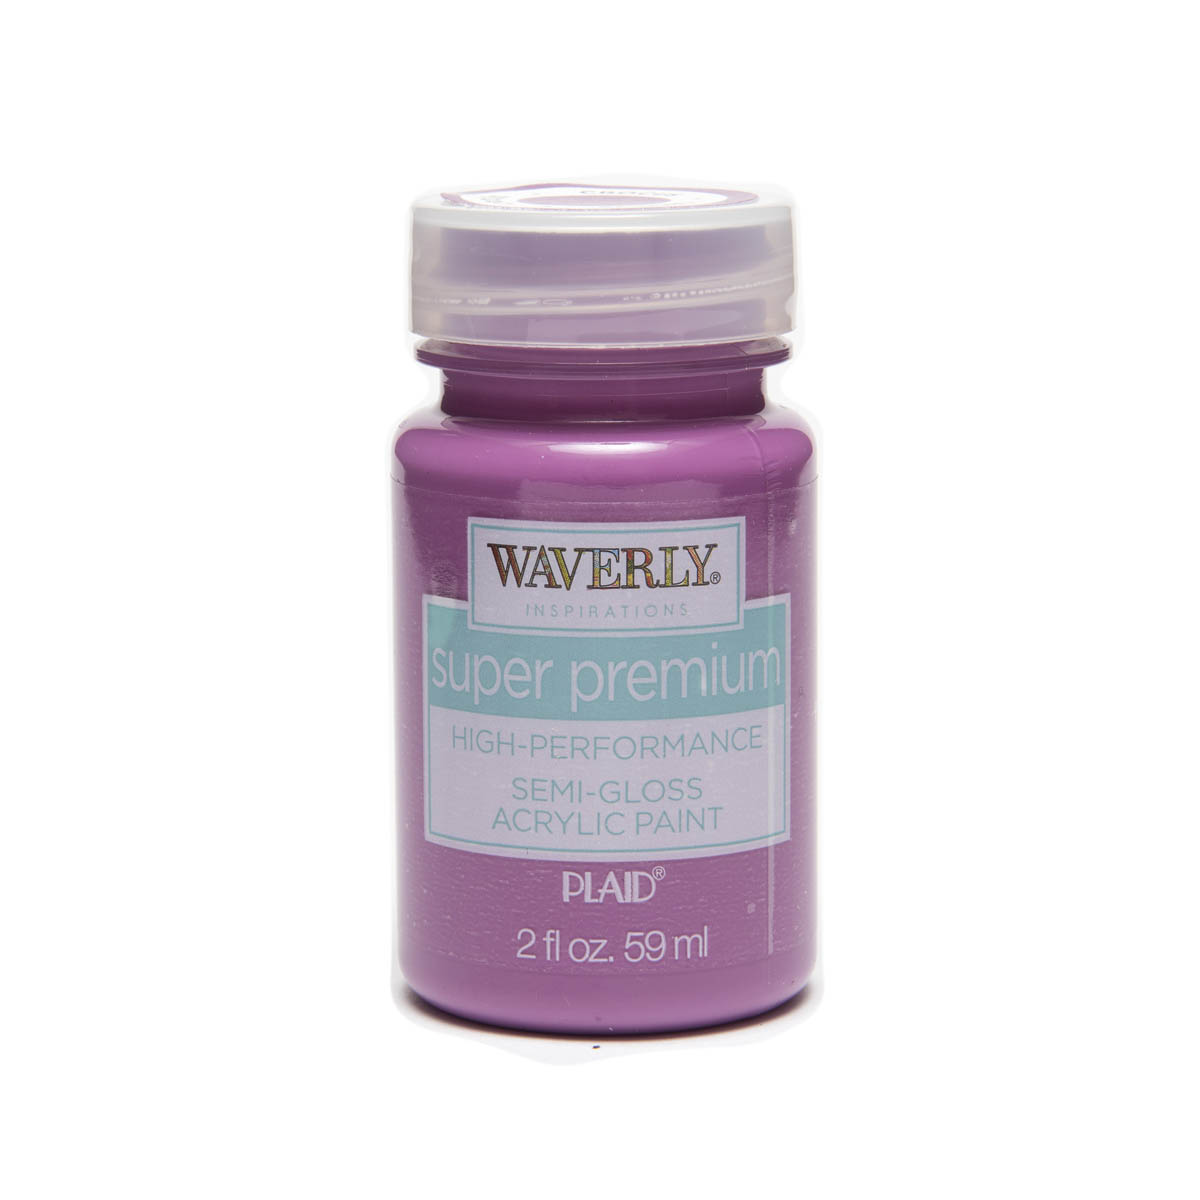 Waverly ® Inspirations Super Premium Semi-Gloss Acrylic Paint - Crocus, 2 oz.